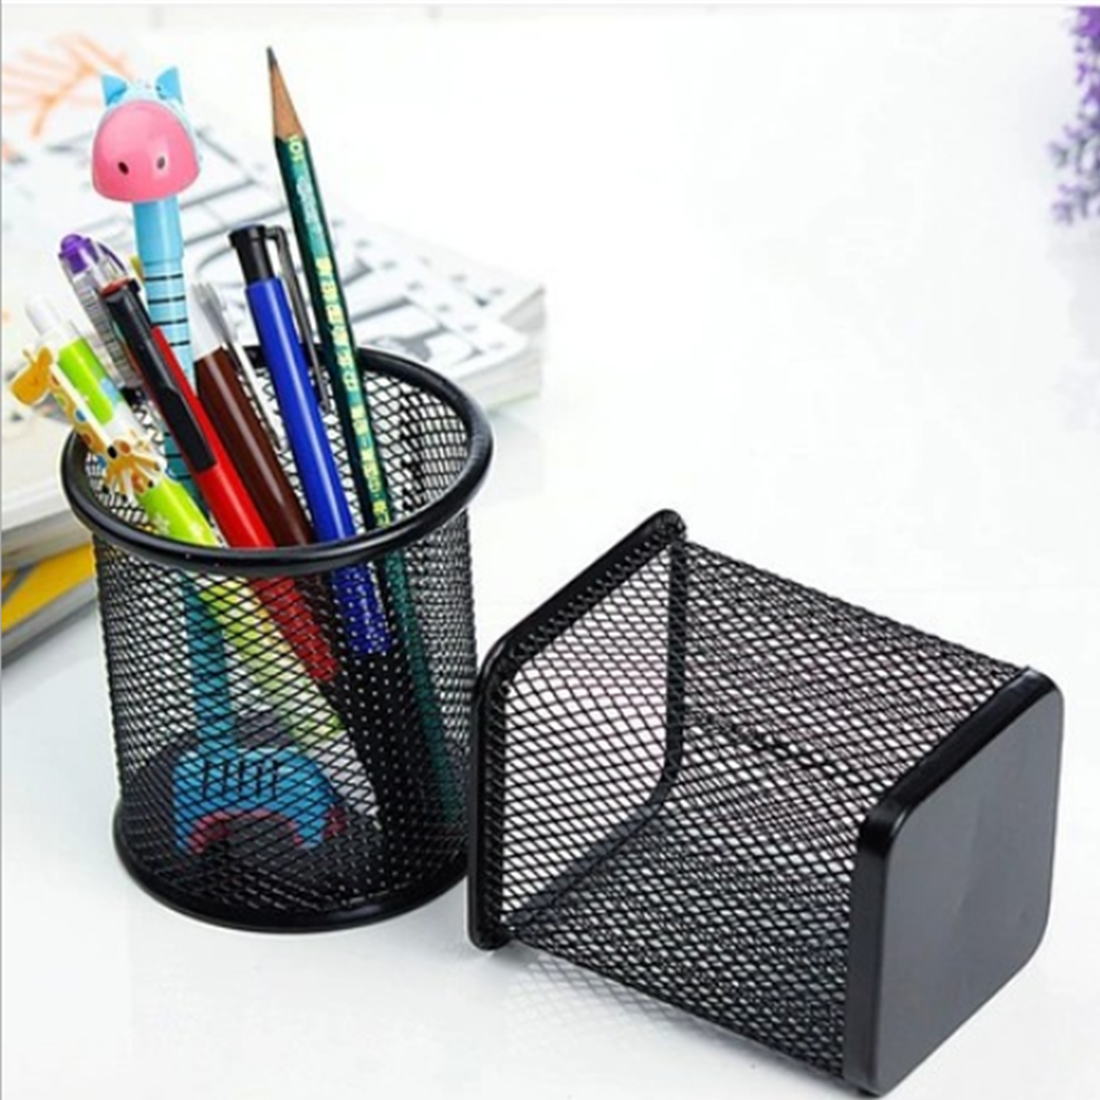 Hot sale case Black Round Steel Mesh Style Pen Pencil Cup Desk Organizer Holder for Home Office ( Round Mesh Pen Holder)